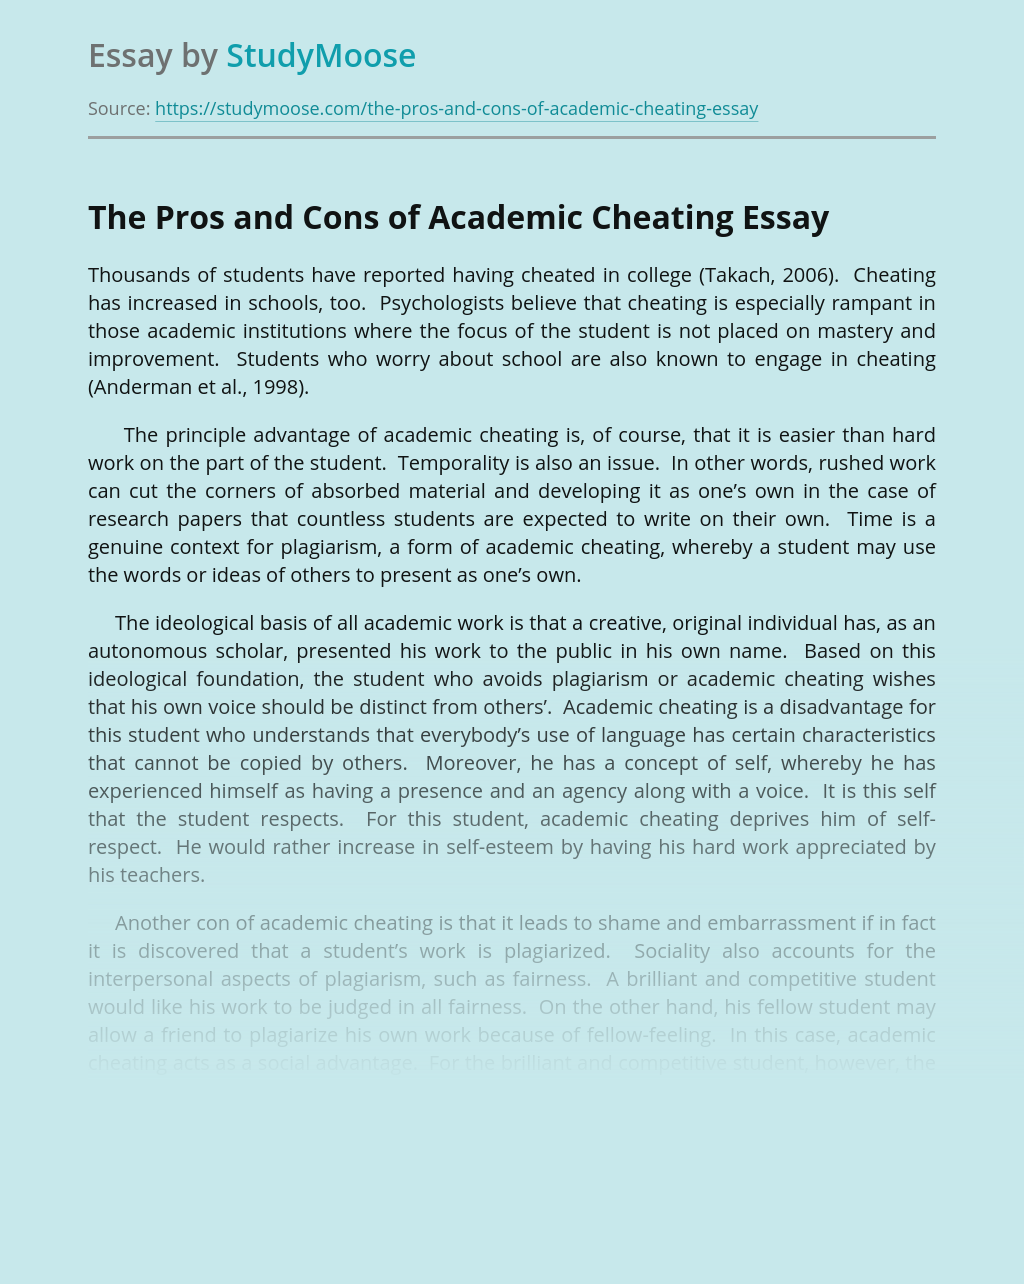 The Pros and Cons of Academic Cheating